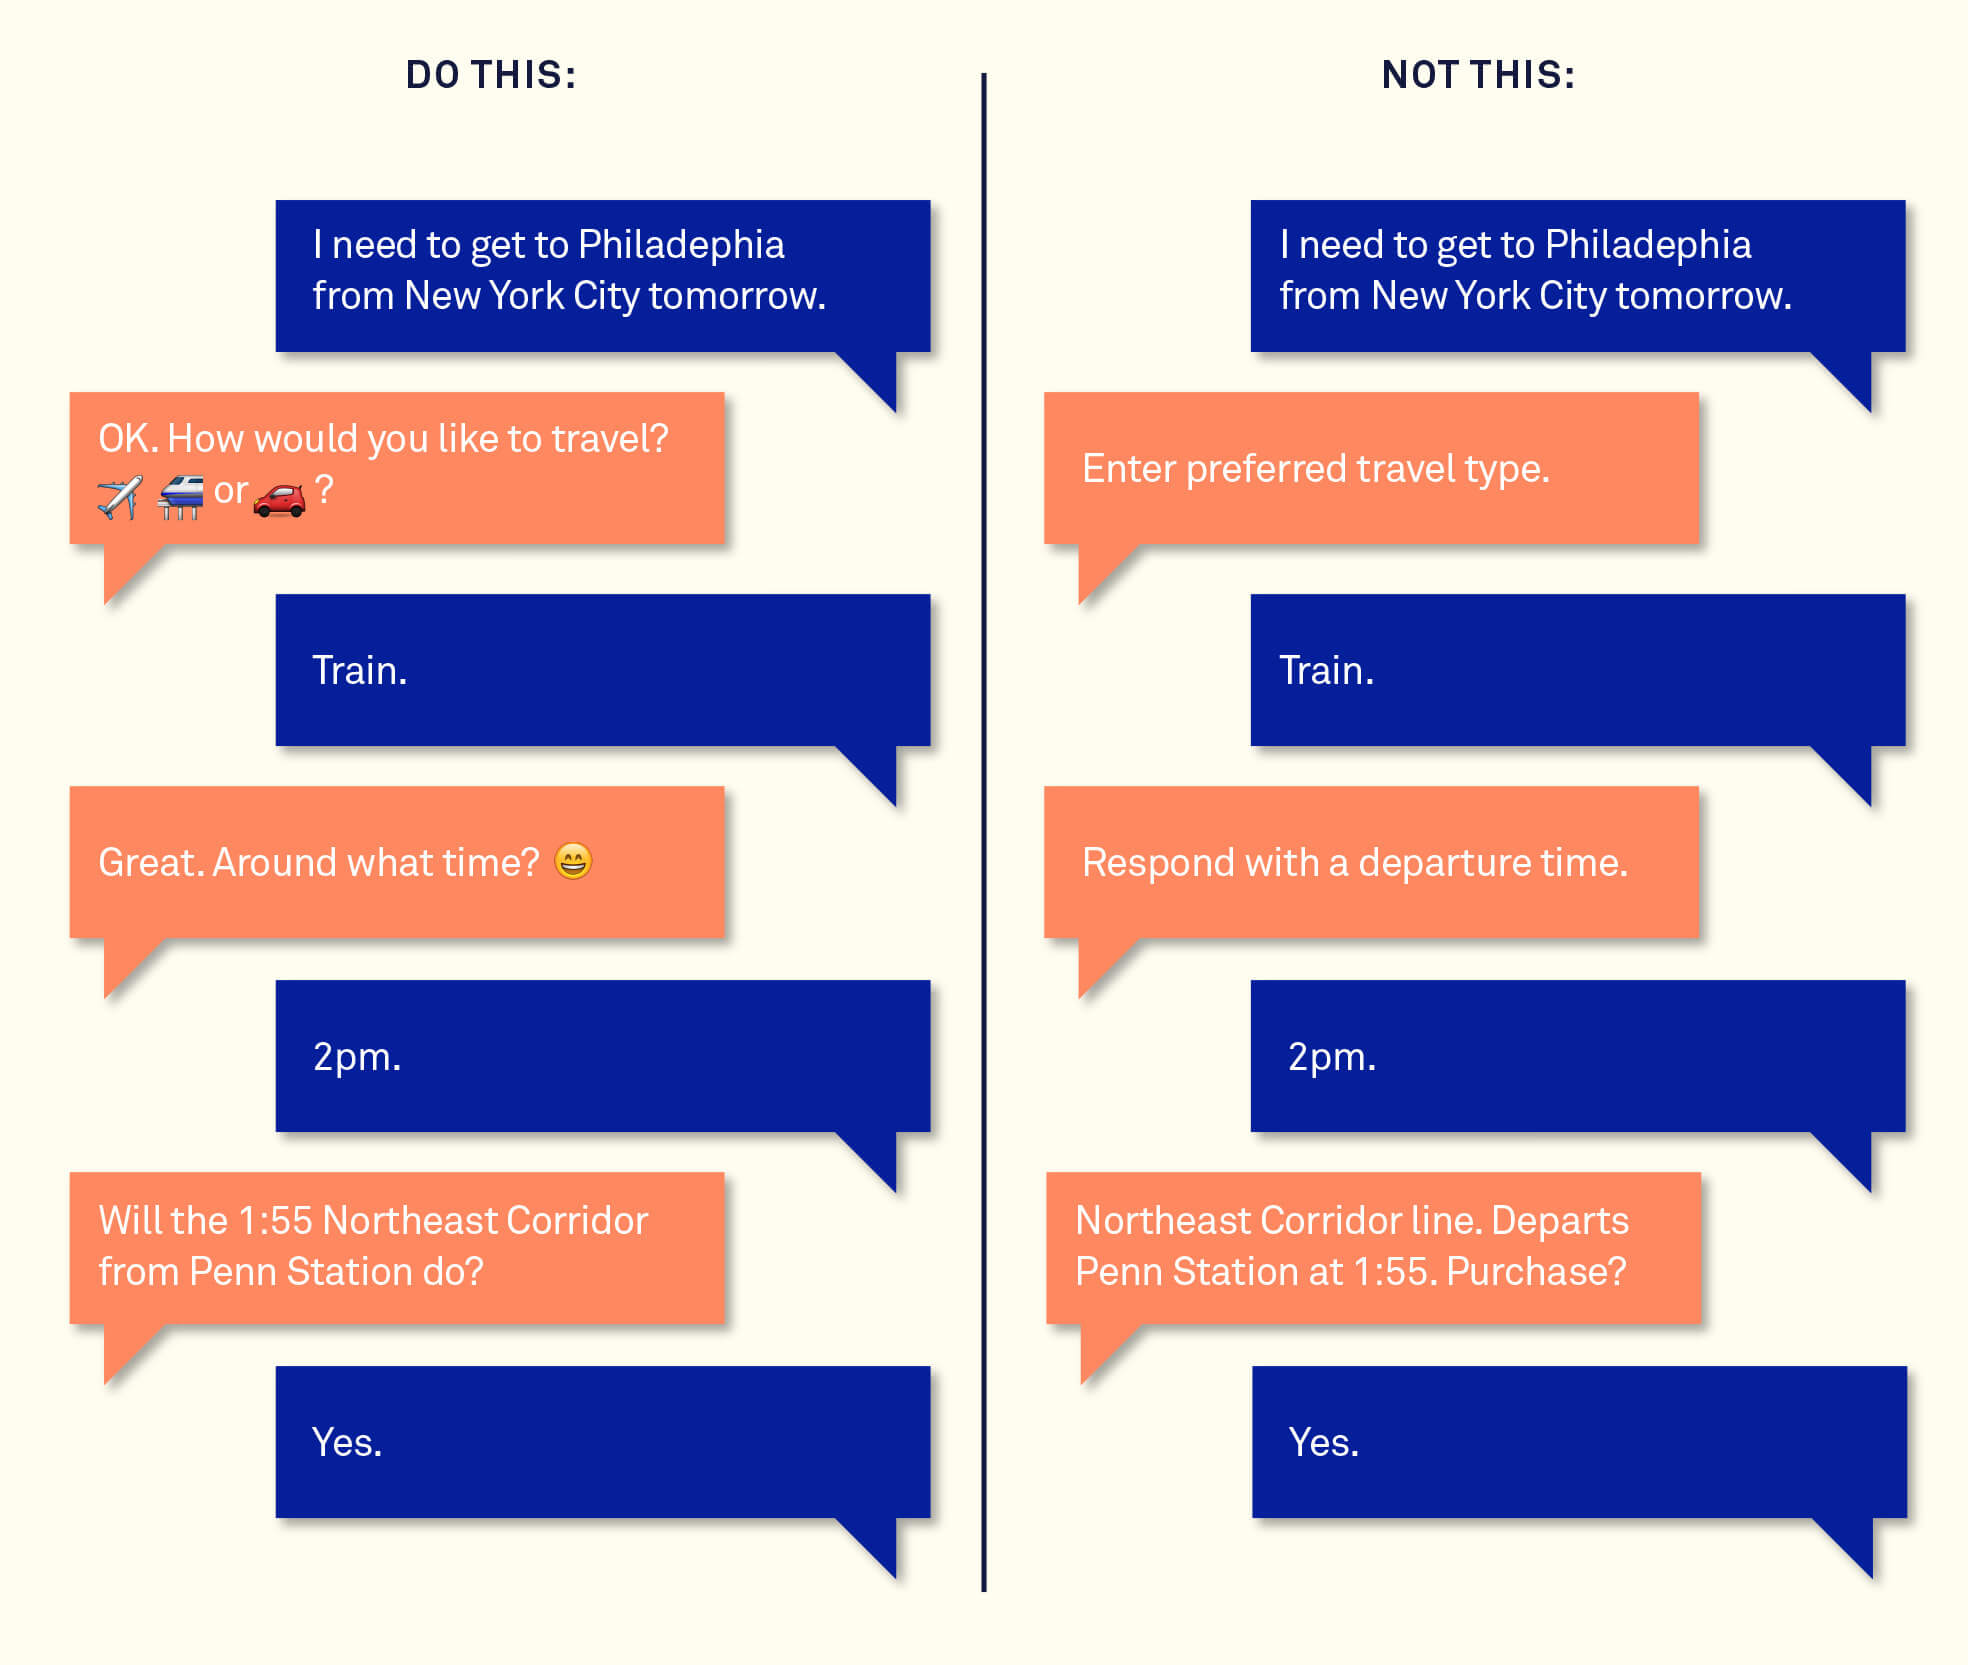 Conversational UI should respect and reflect the natural conversational form